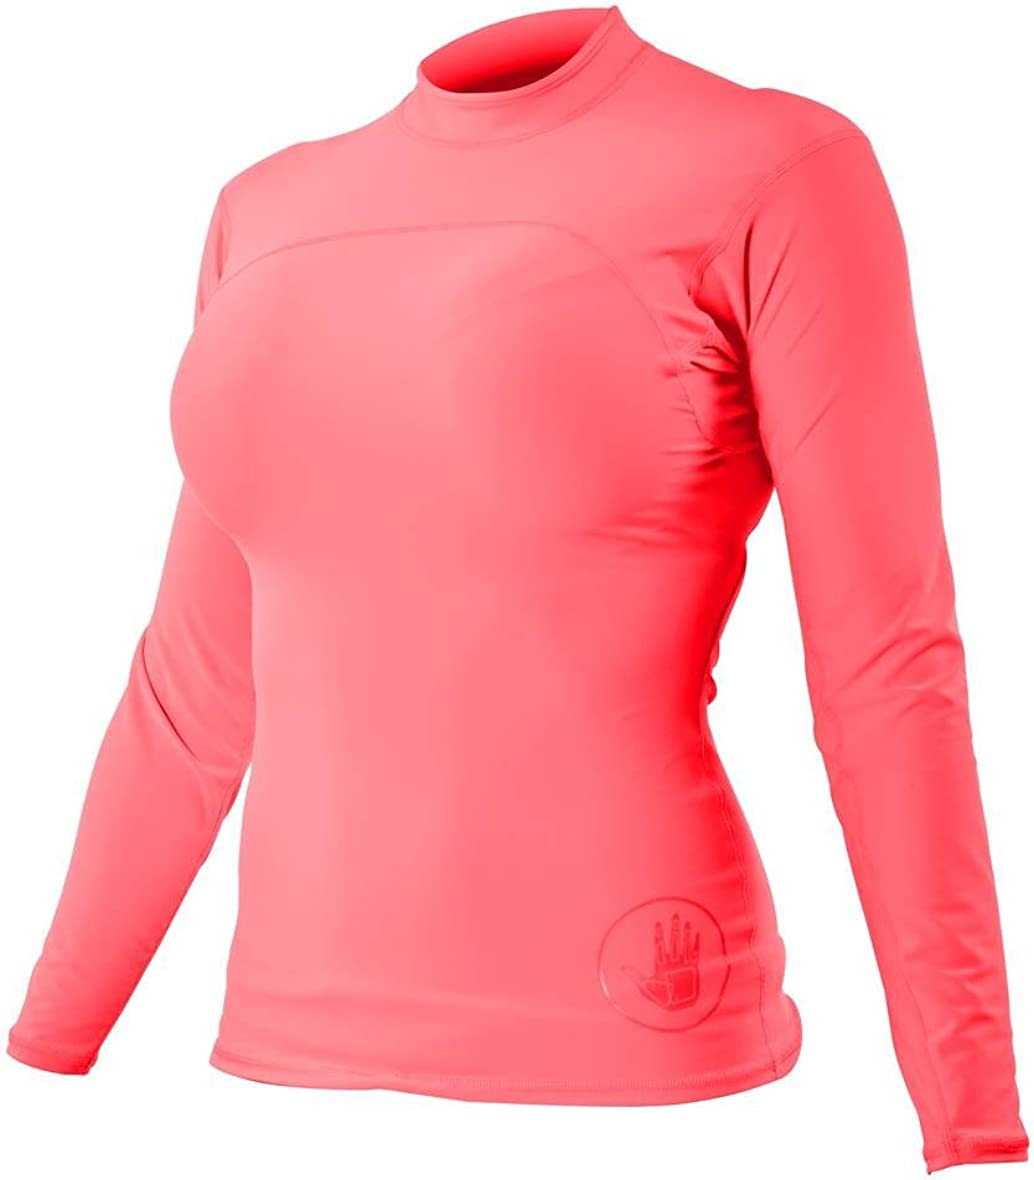 Body Glove Wetsuit Co Womens Smoothies Fitted Long Arm Rashguard